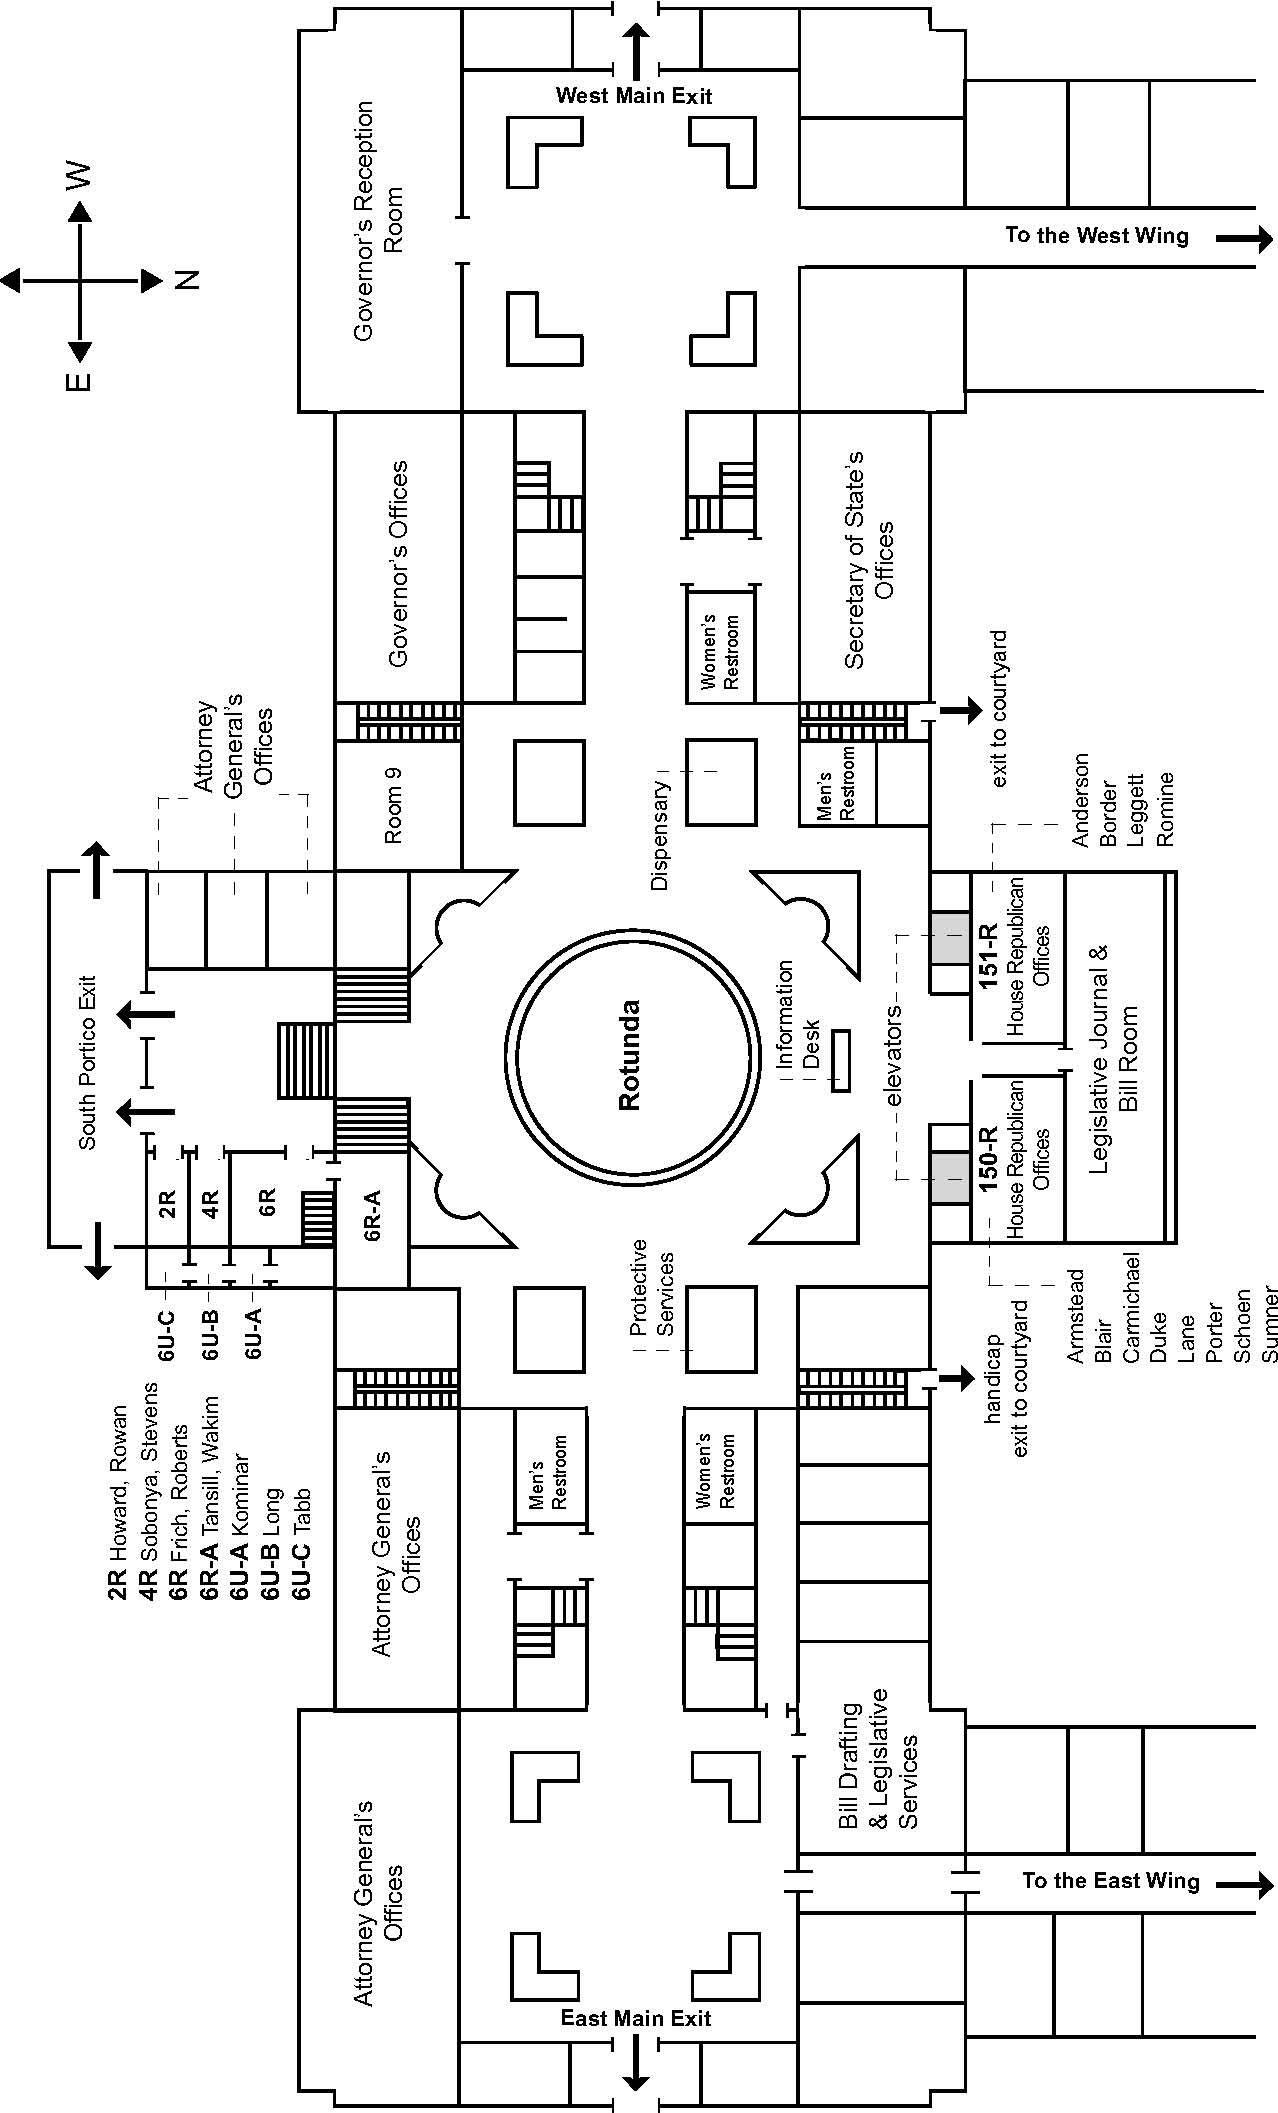 Capitol Visitor Center Indoor Map US Capitol Visitor Center - Map of us capitol building